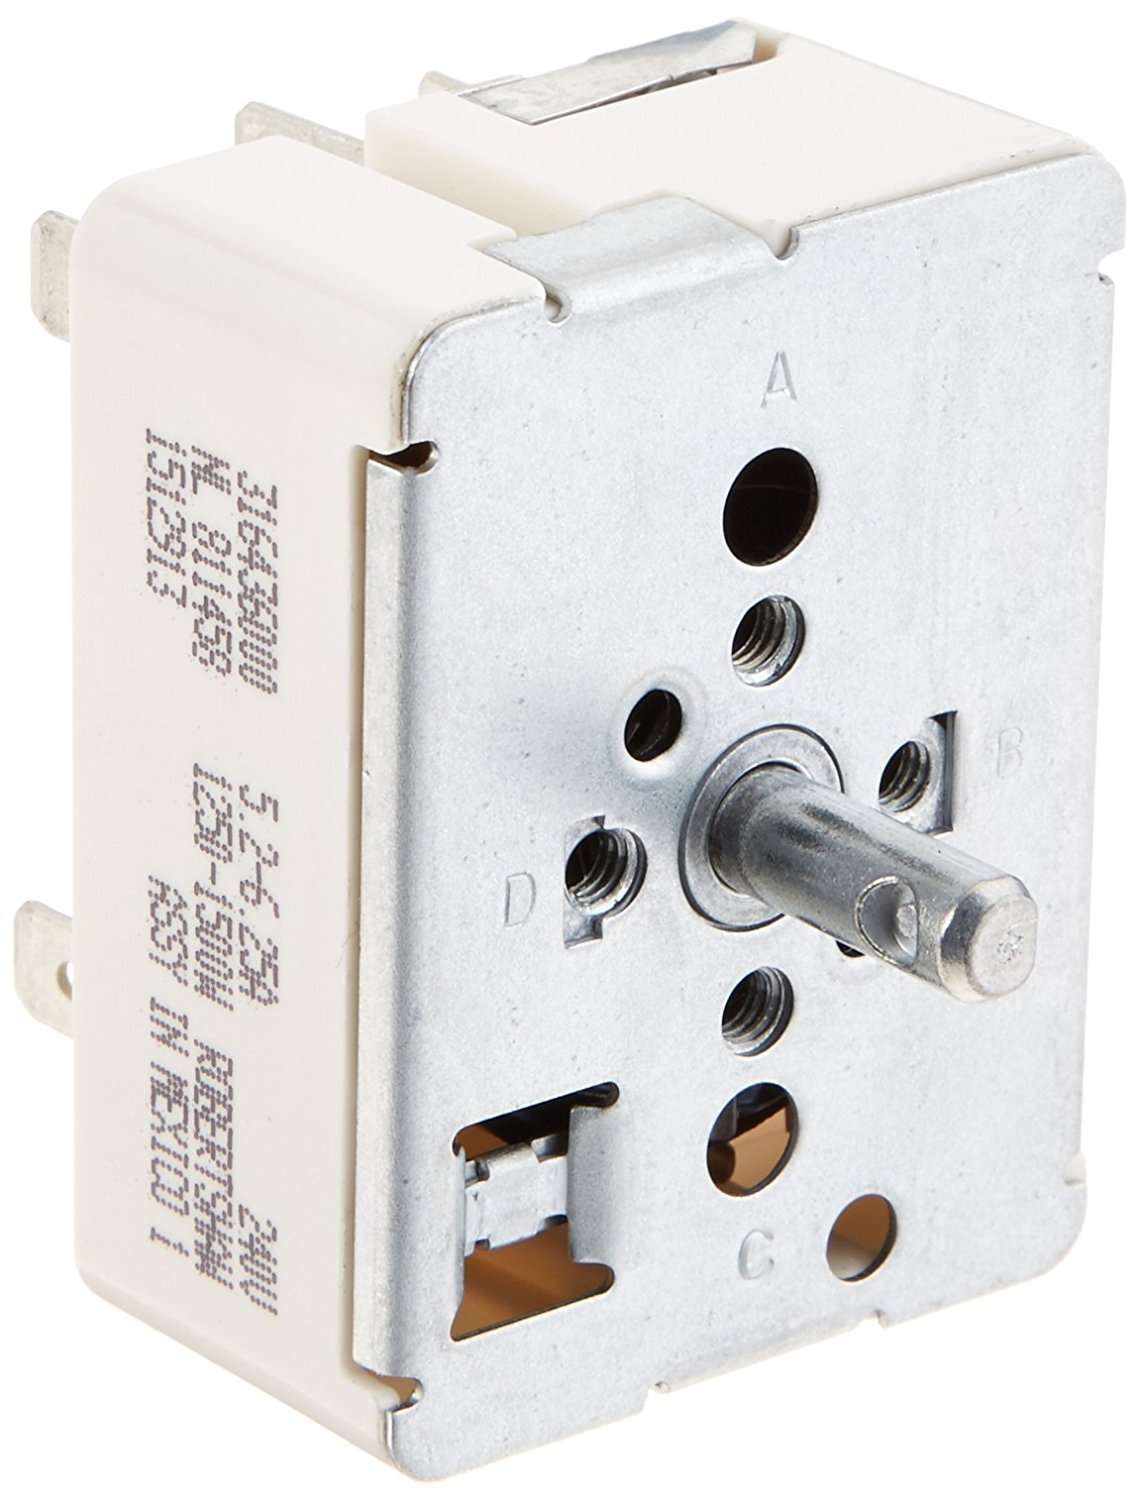 Kenmore / Sears 7909421440D Burner Switch Replacement